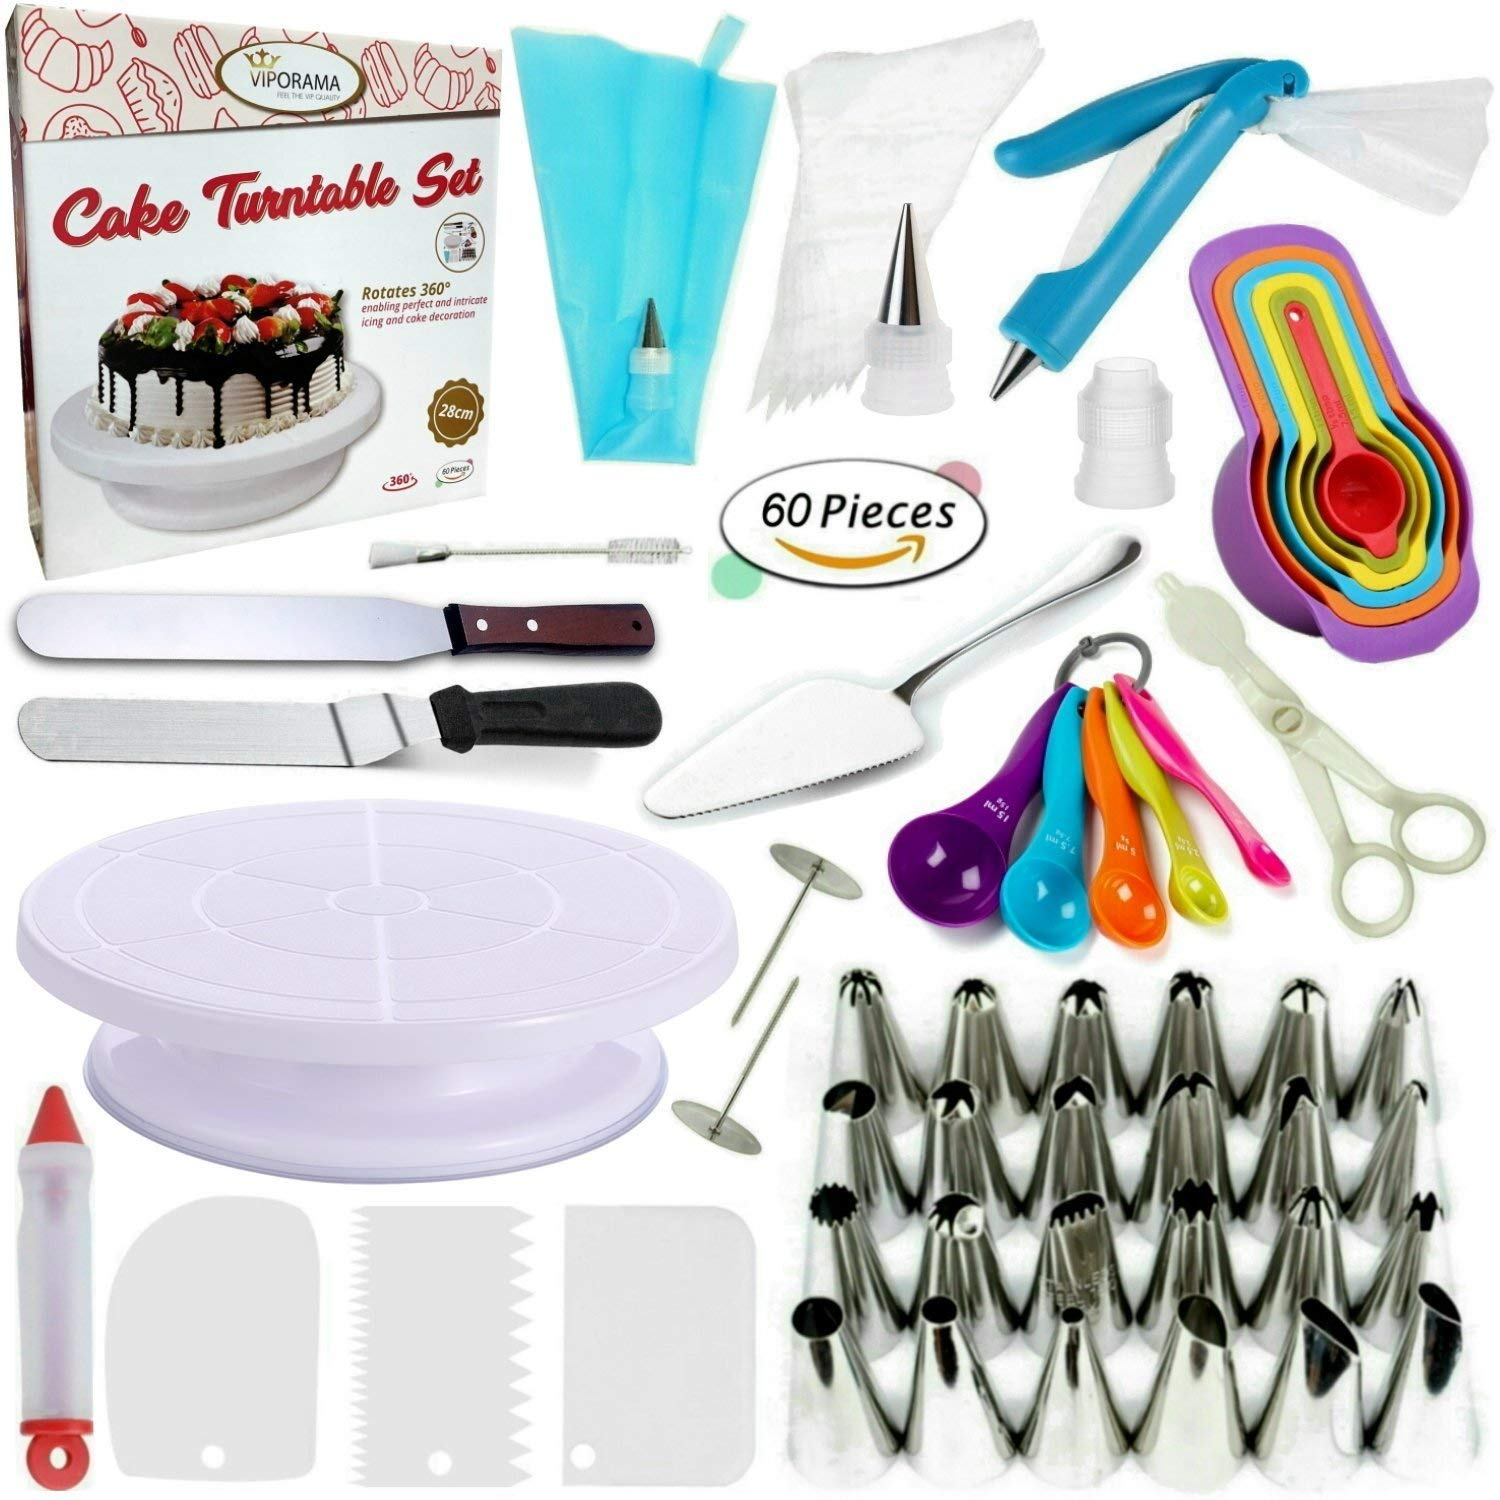 Whryspa All-in-One Cake Decorating Kit Supplies with Revolving Cake Turntable, 24 Cake Decorating Tips, for Cake Decoration Baking Tools by Whryspa (Image #1)